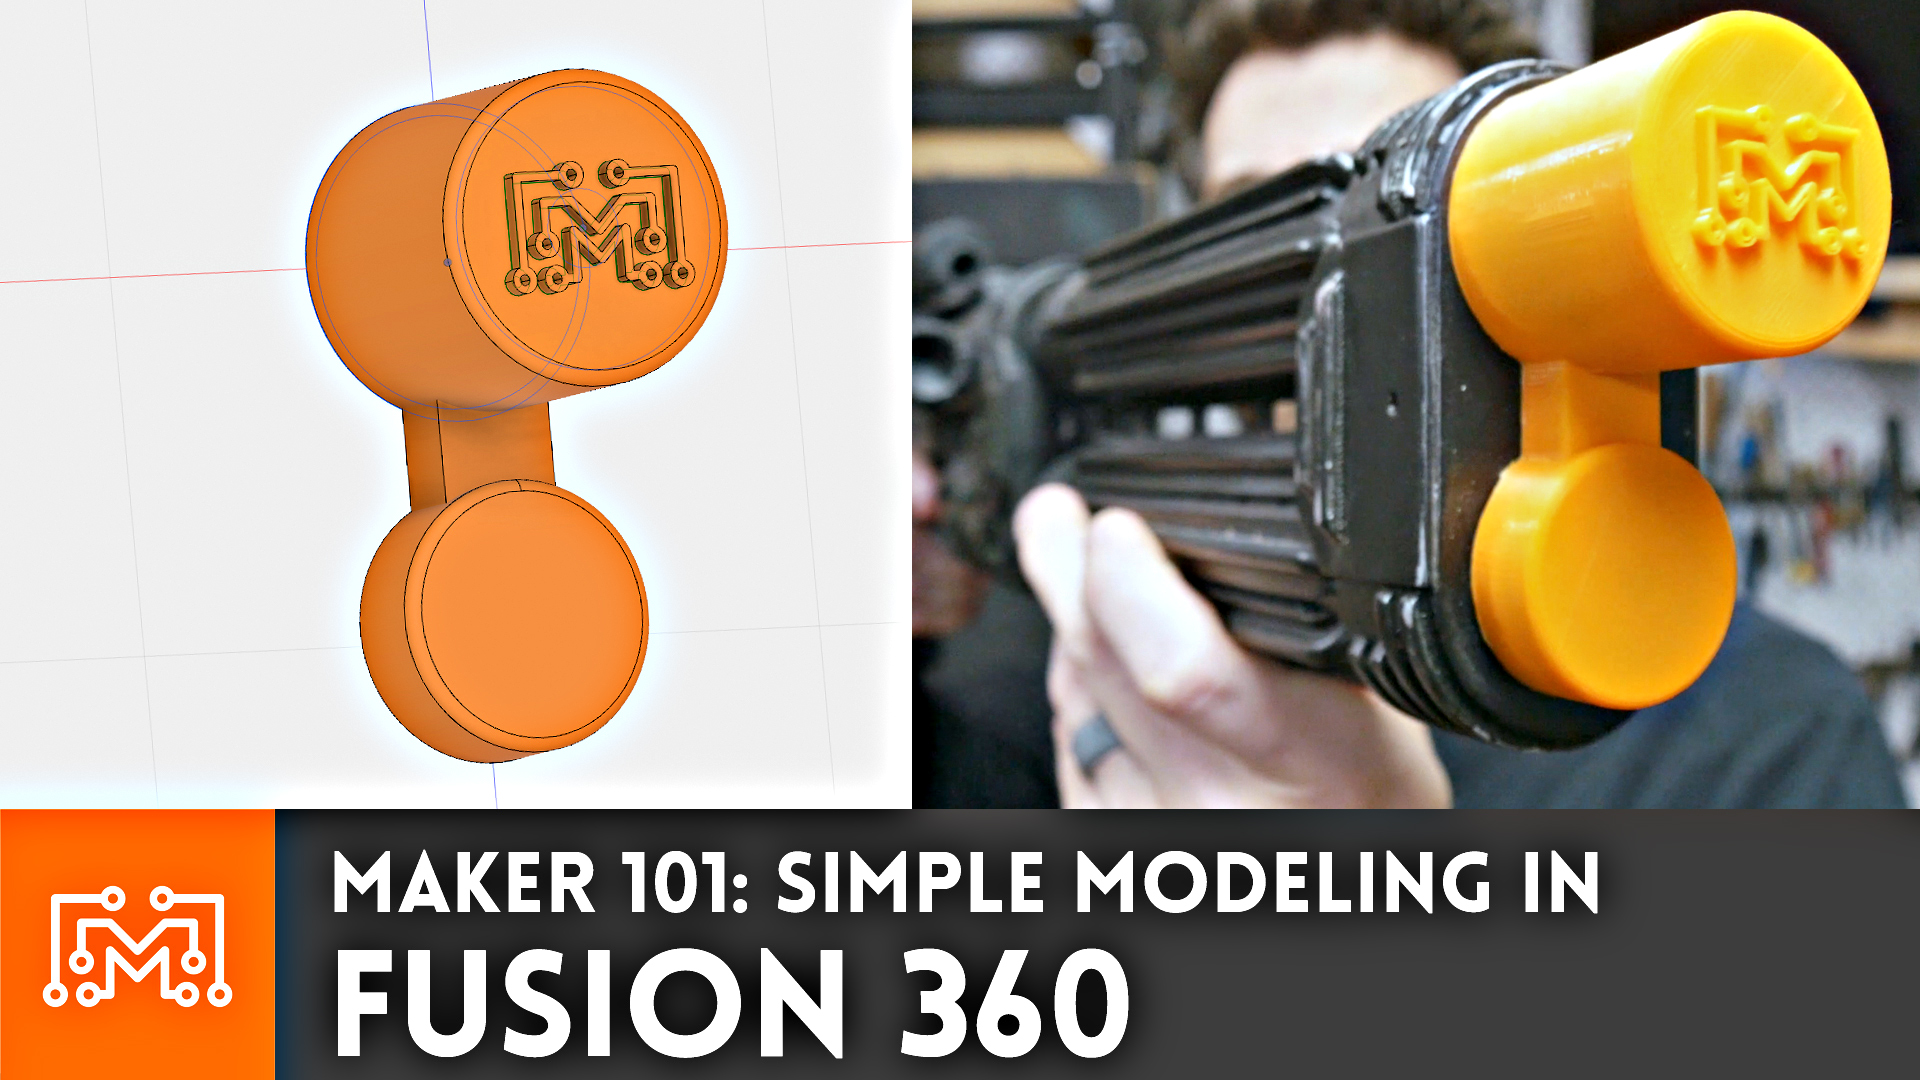 Maker 101 Simple Modeling In Fusion 360 For 3d Printing